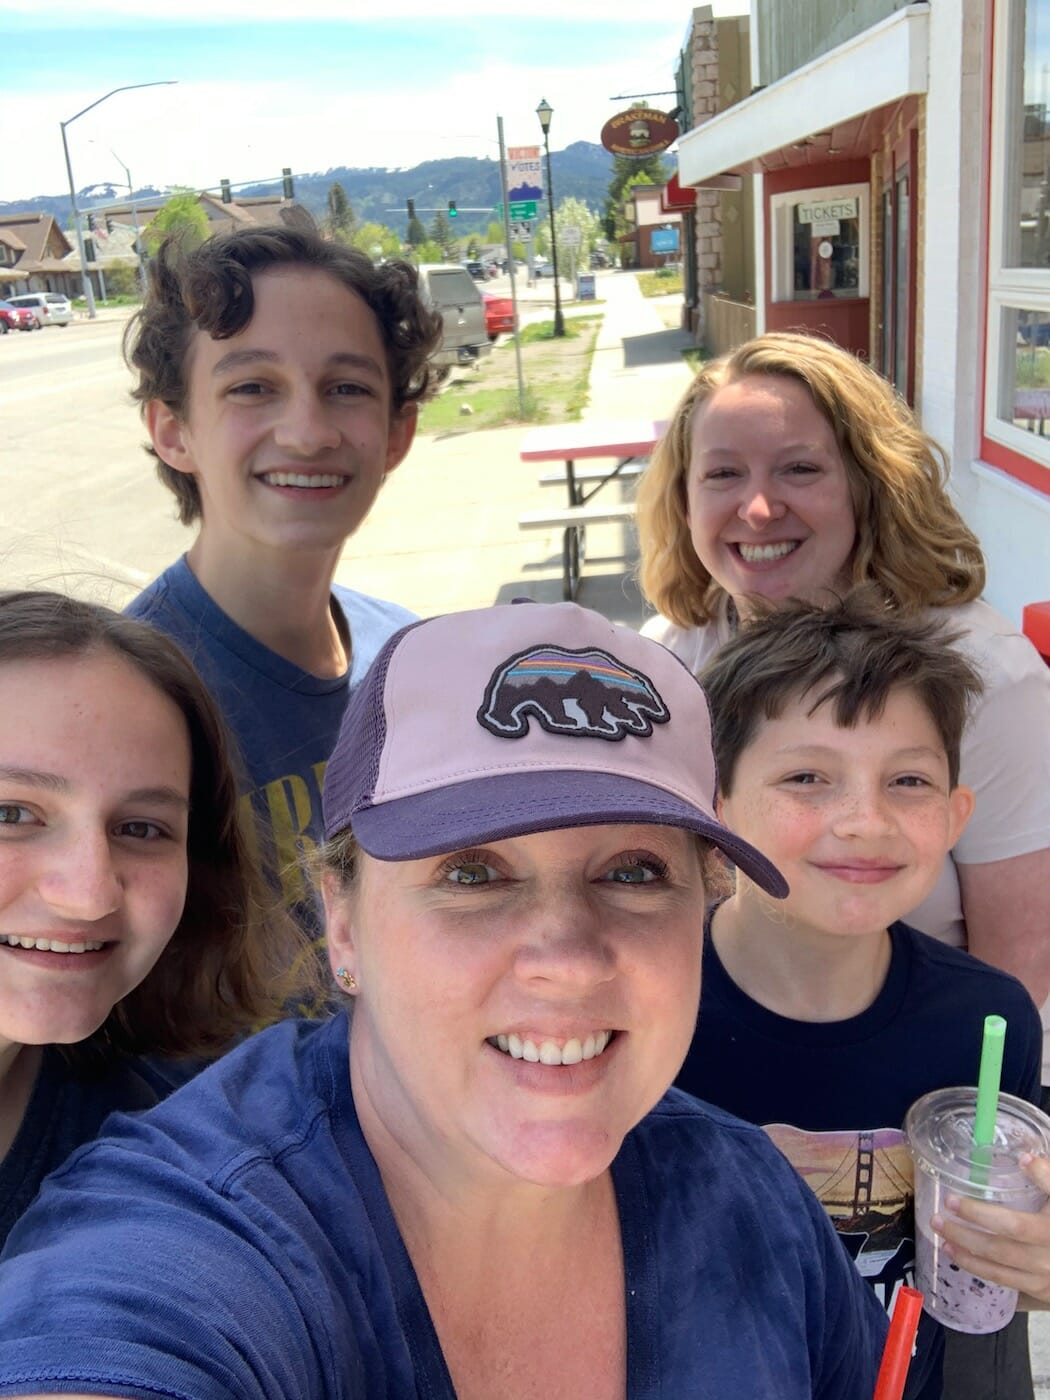 getting Huckleberry shakes in Victor, Idaho